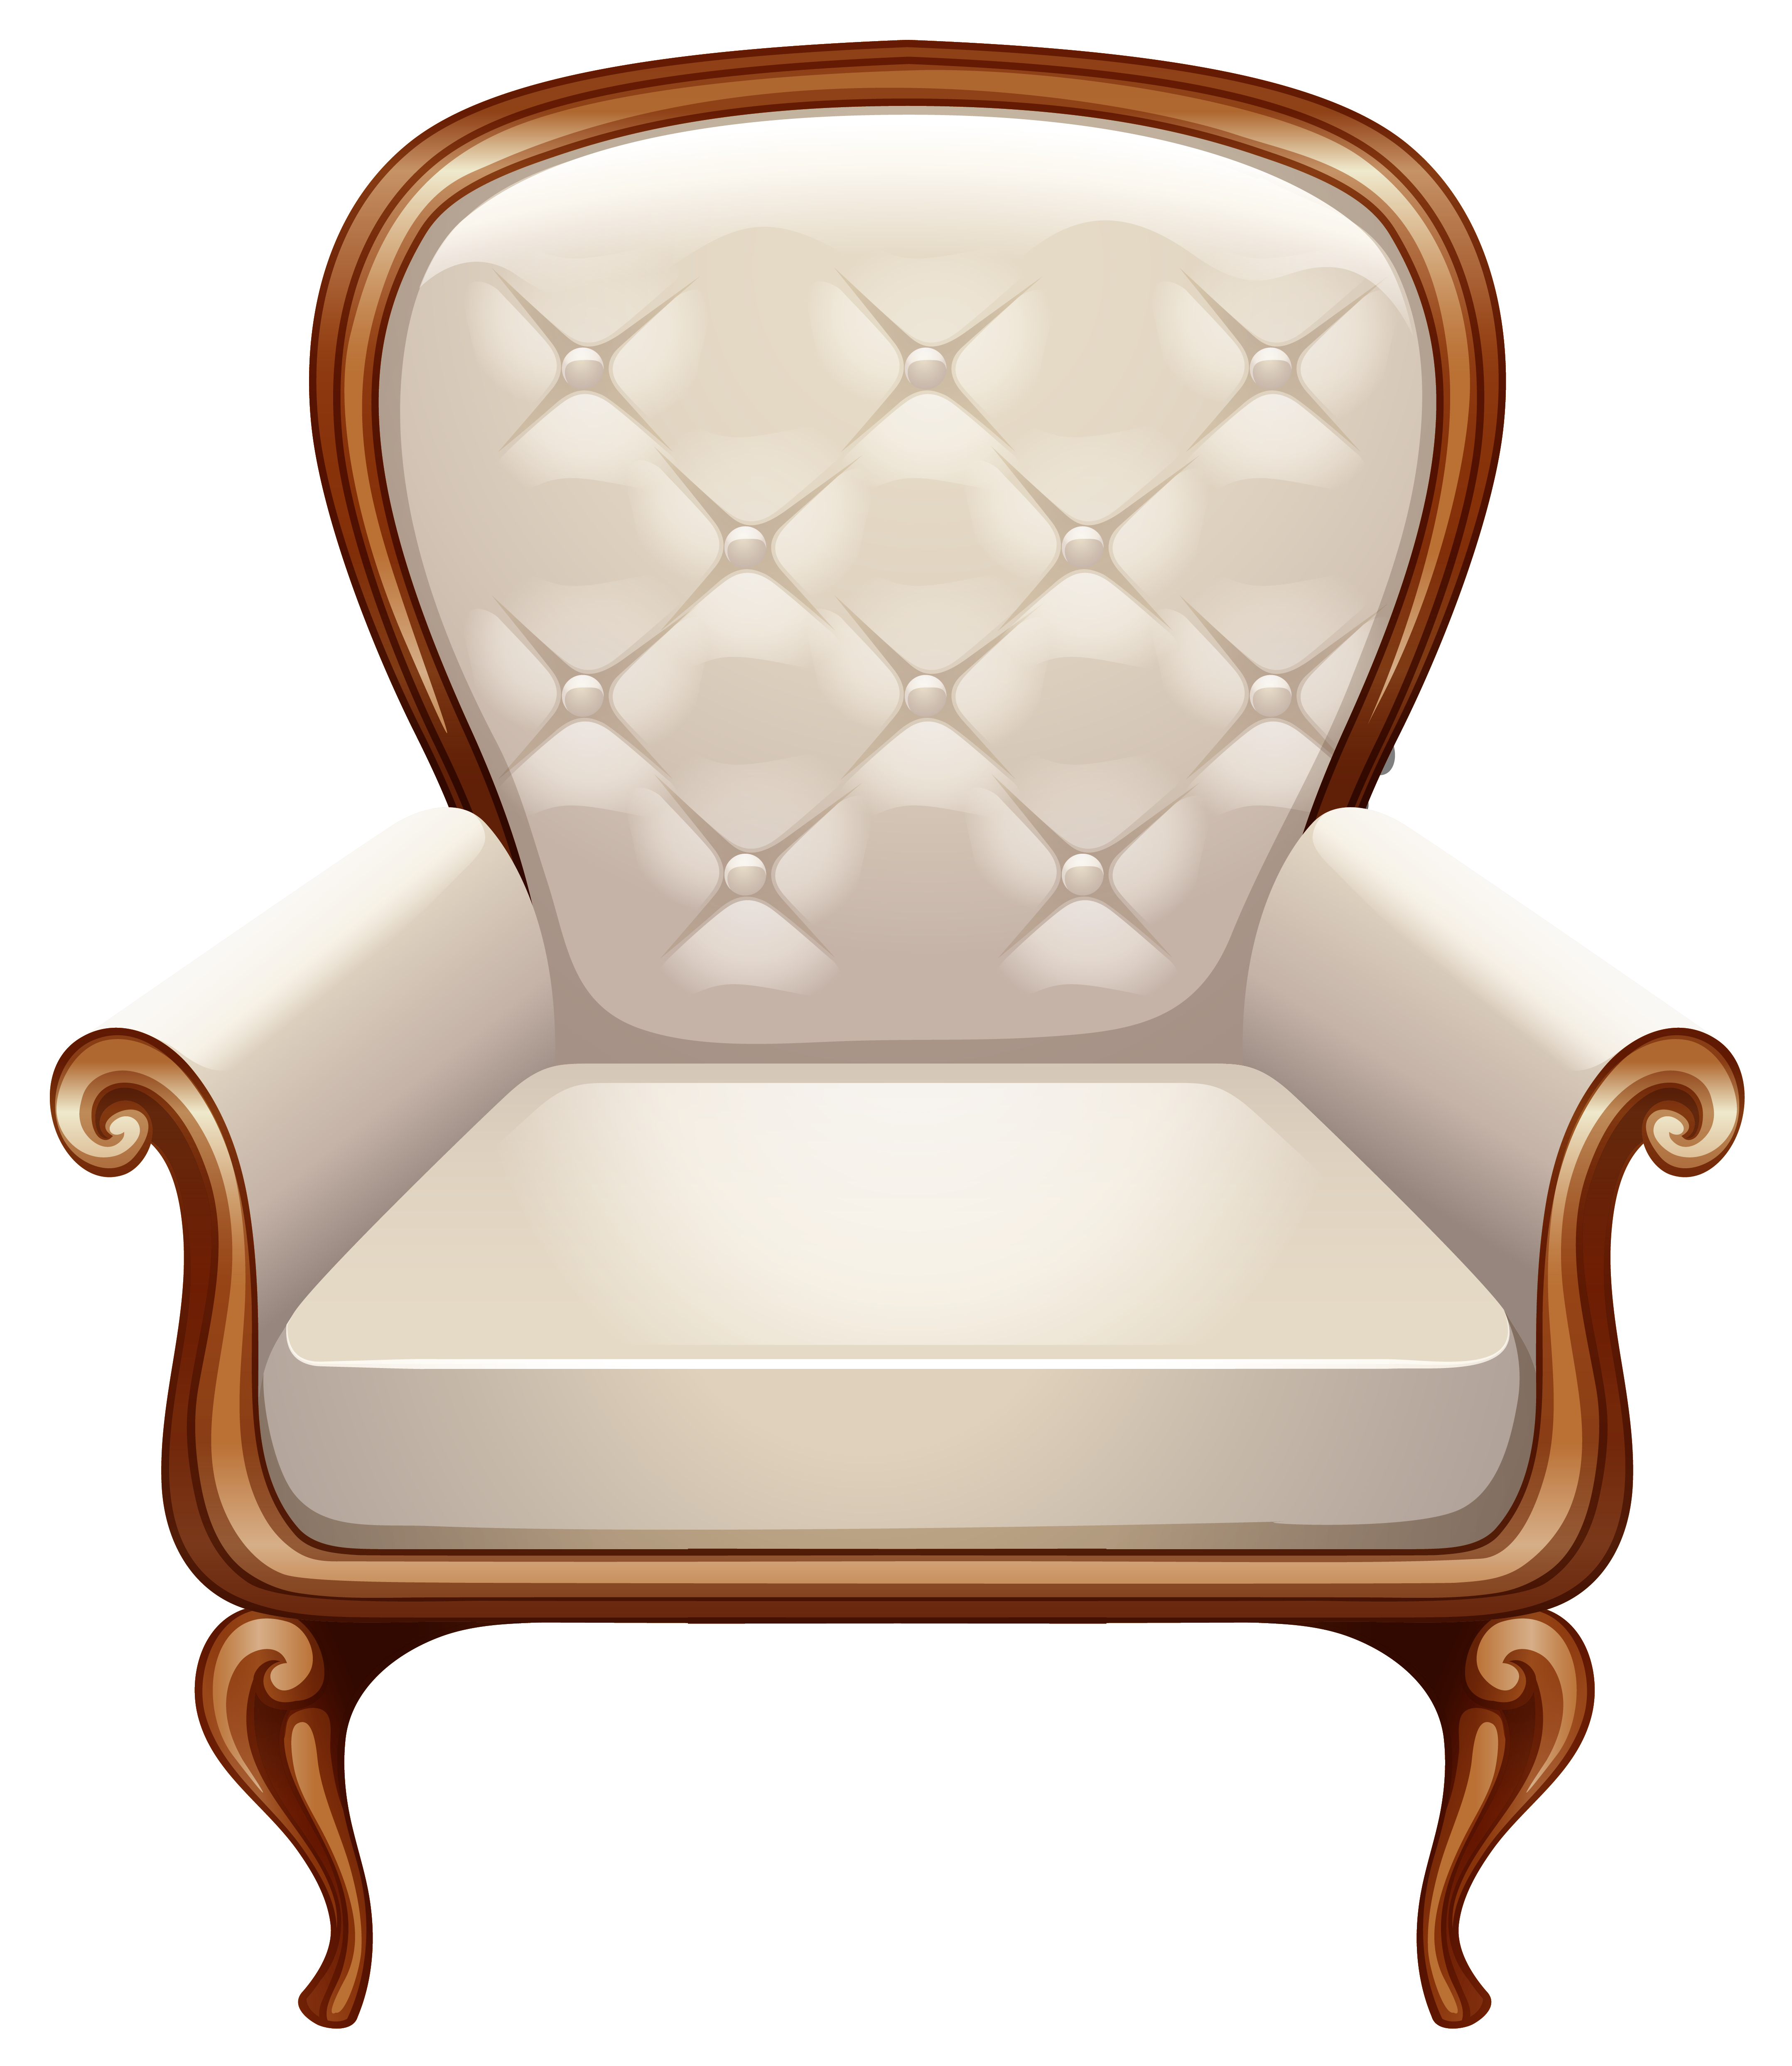 clip art library library Arm png image gallery. Chair clipart.